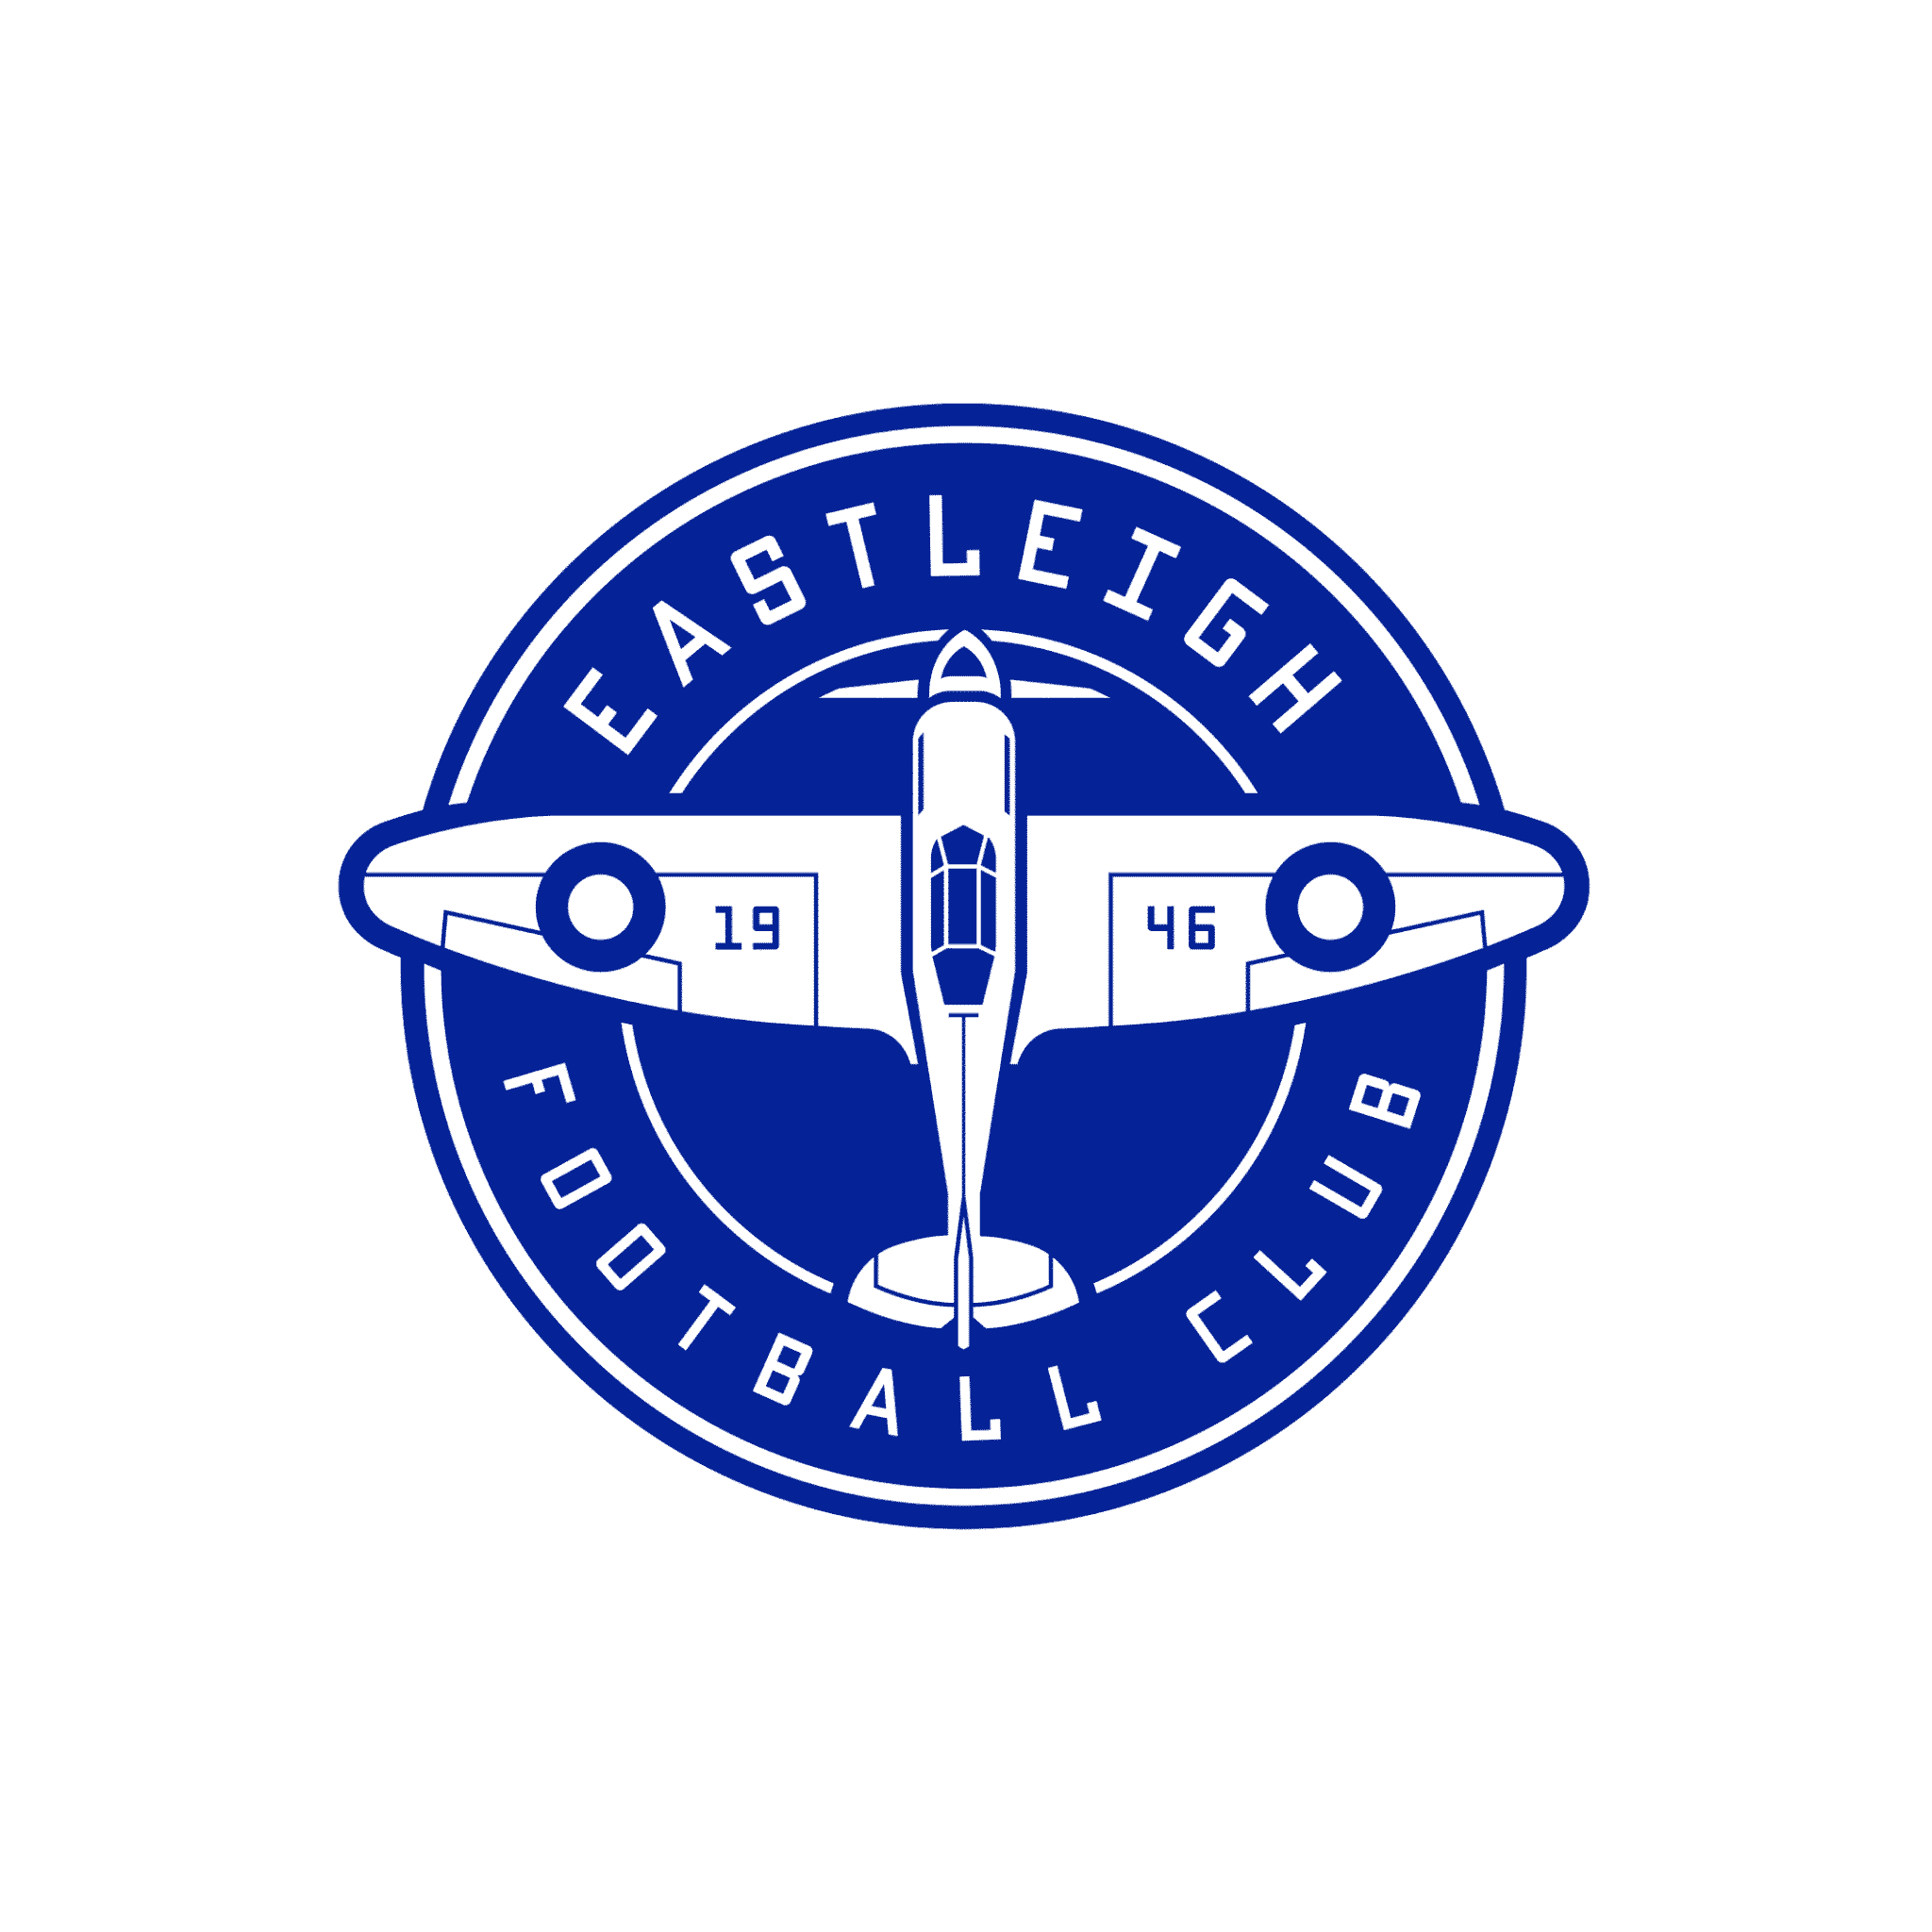 Eastleigh Football club logo